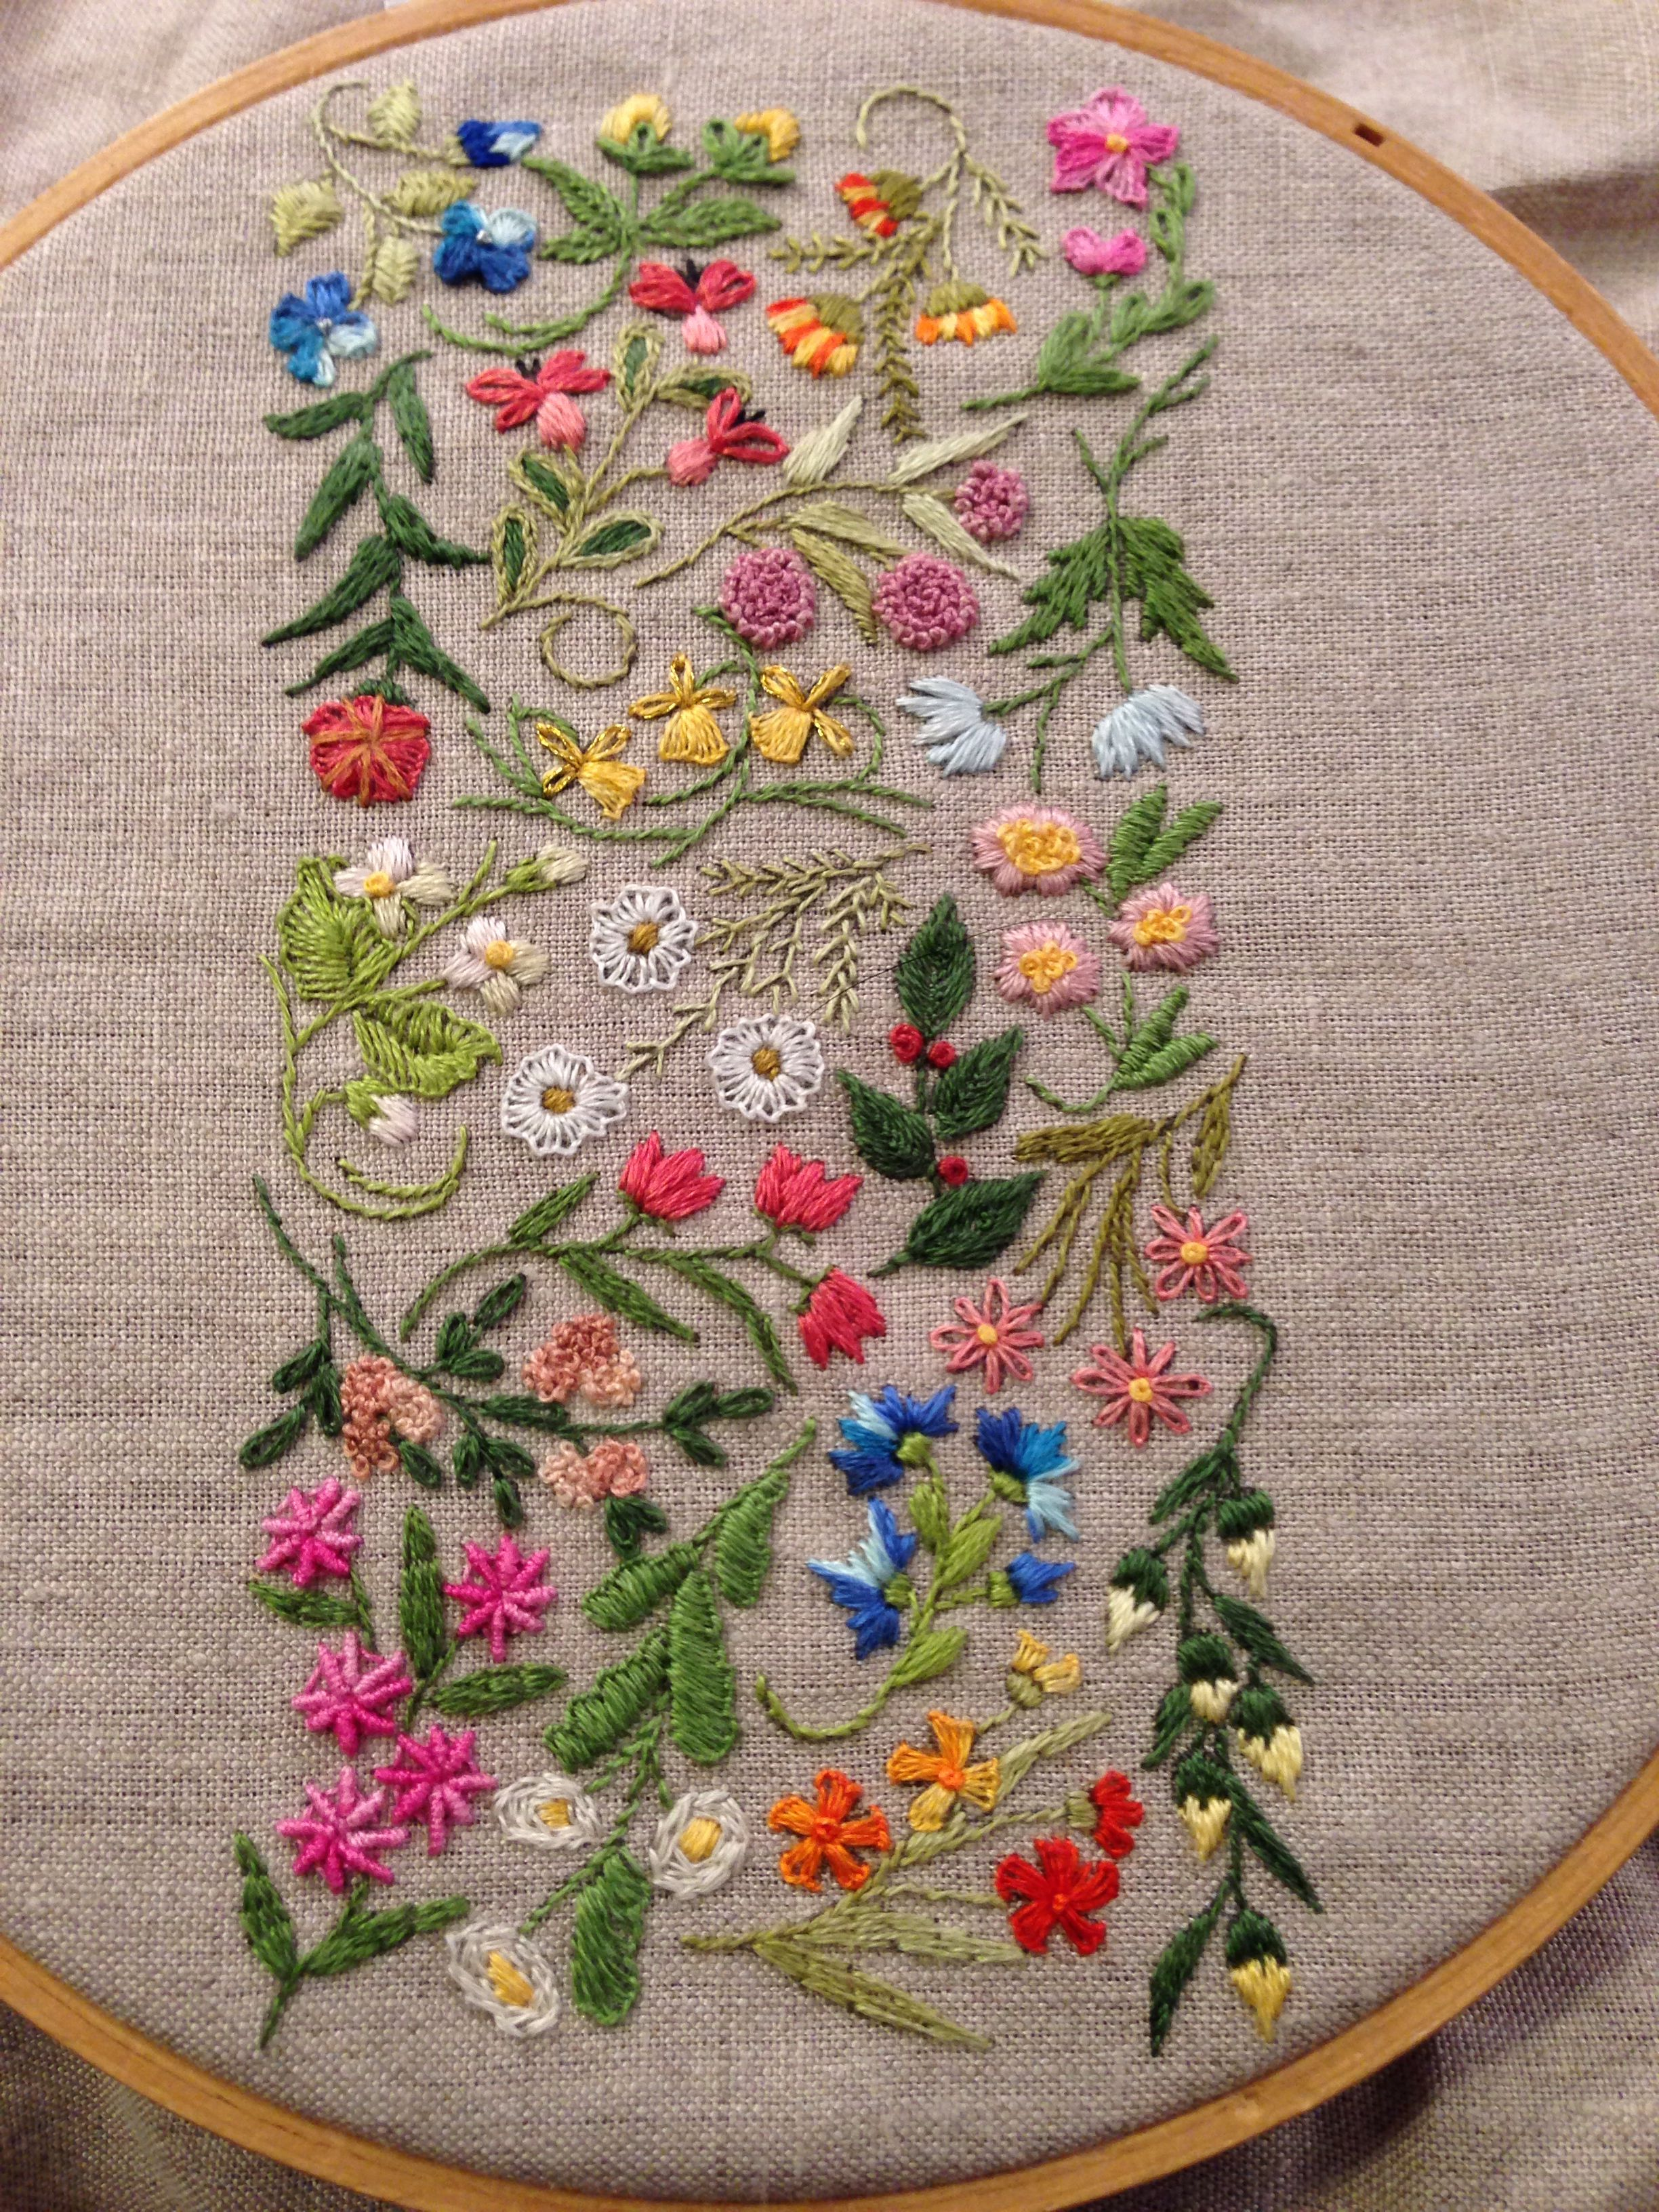 Shop Def E Canevasfolies Blog Hand Embroidery Embroidery Inspiration Embroidery Patterns